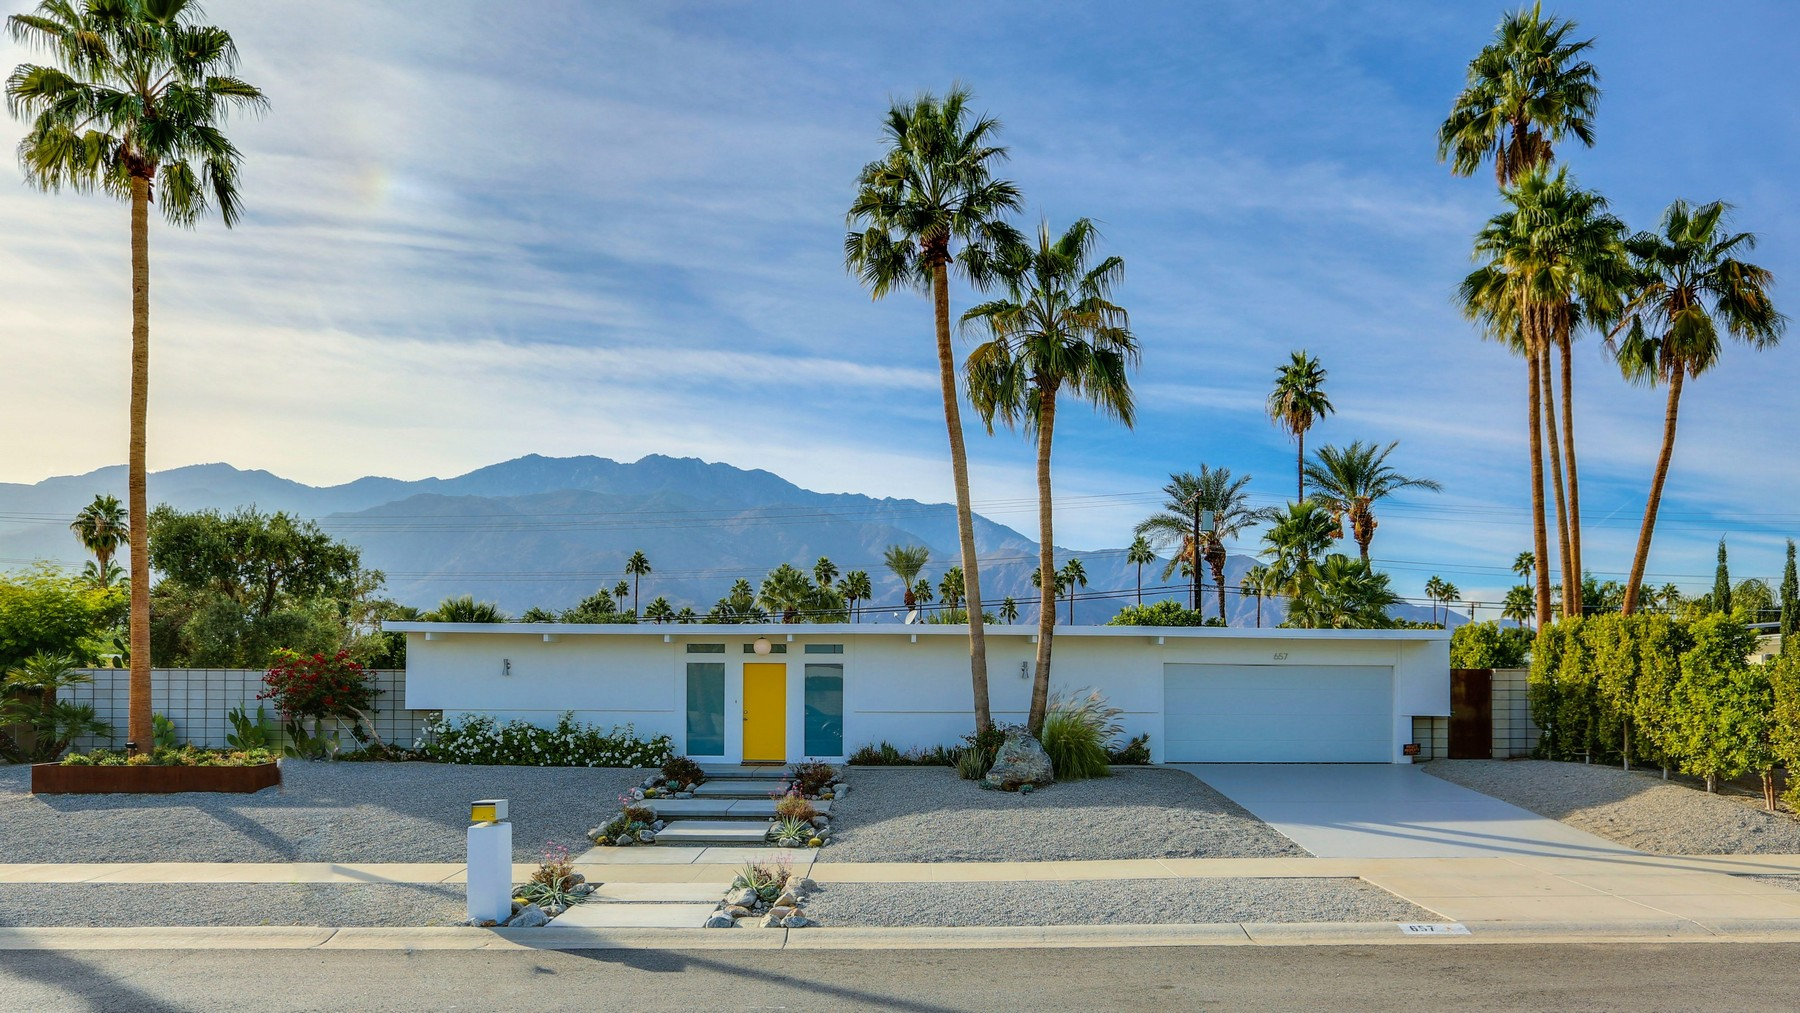 Single Family Home for Sale at 657 North Juanita Drive Palm Springs, California 92262 United States